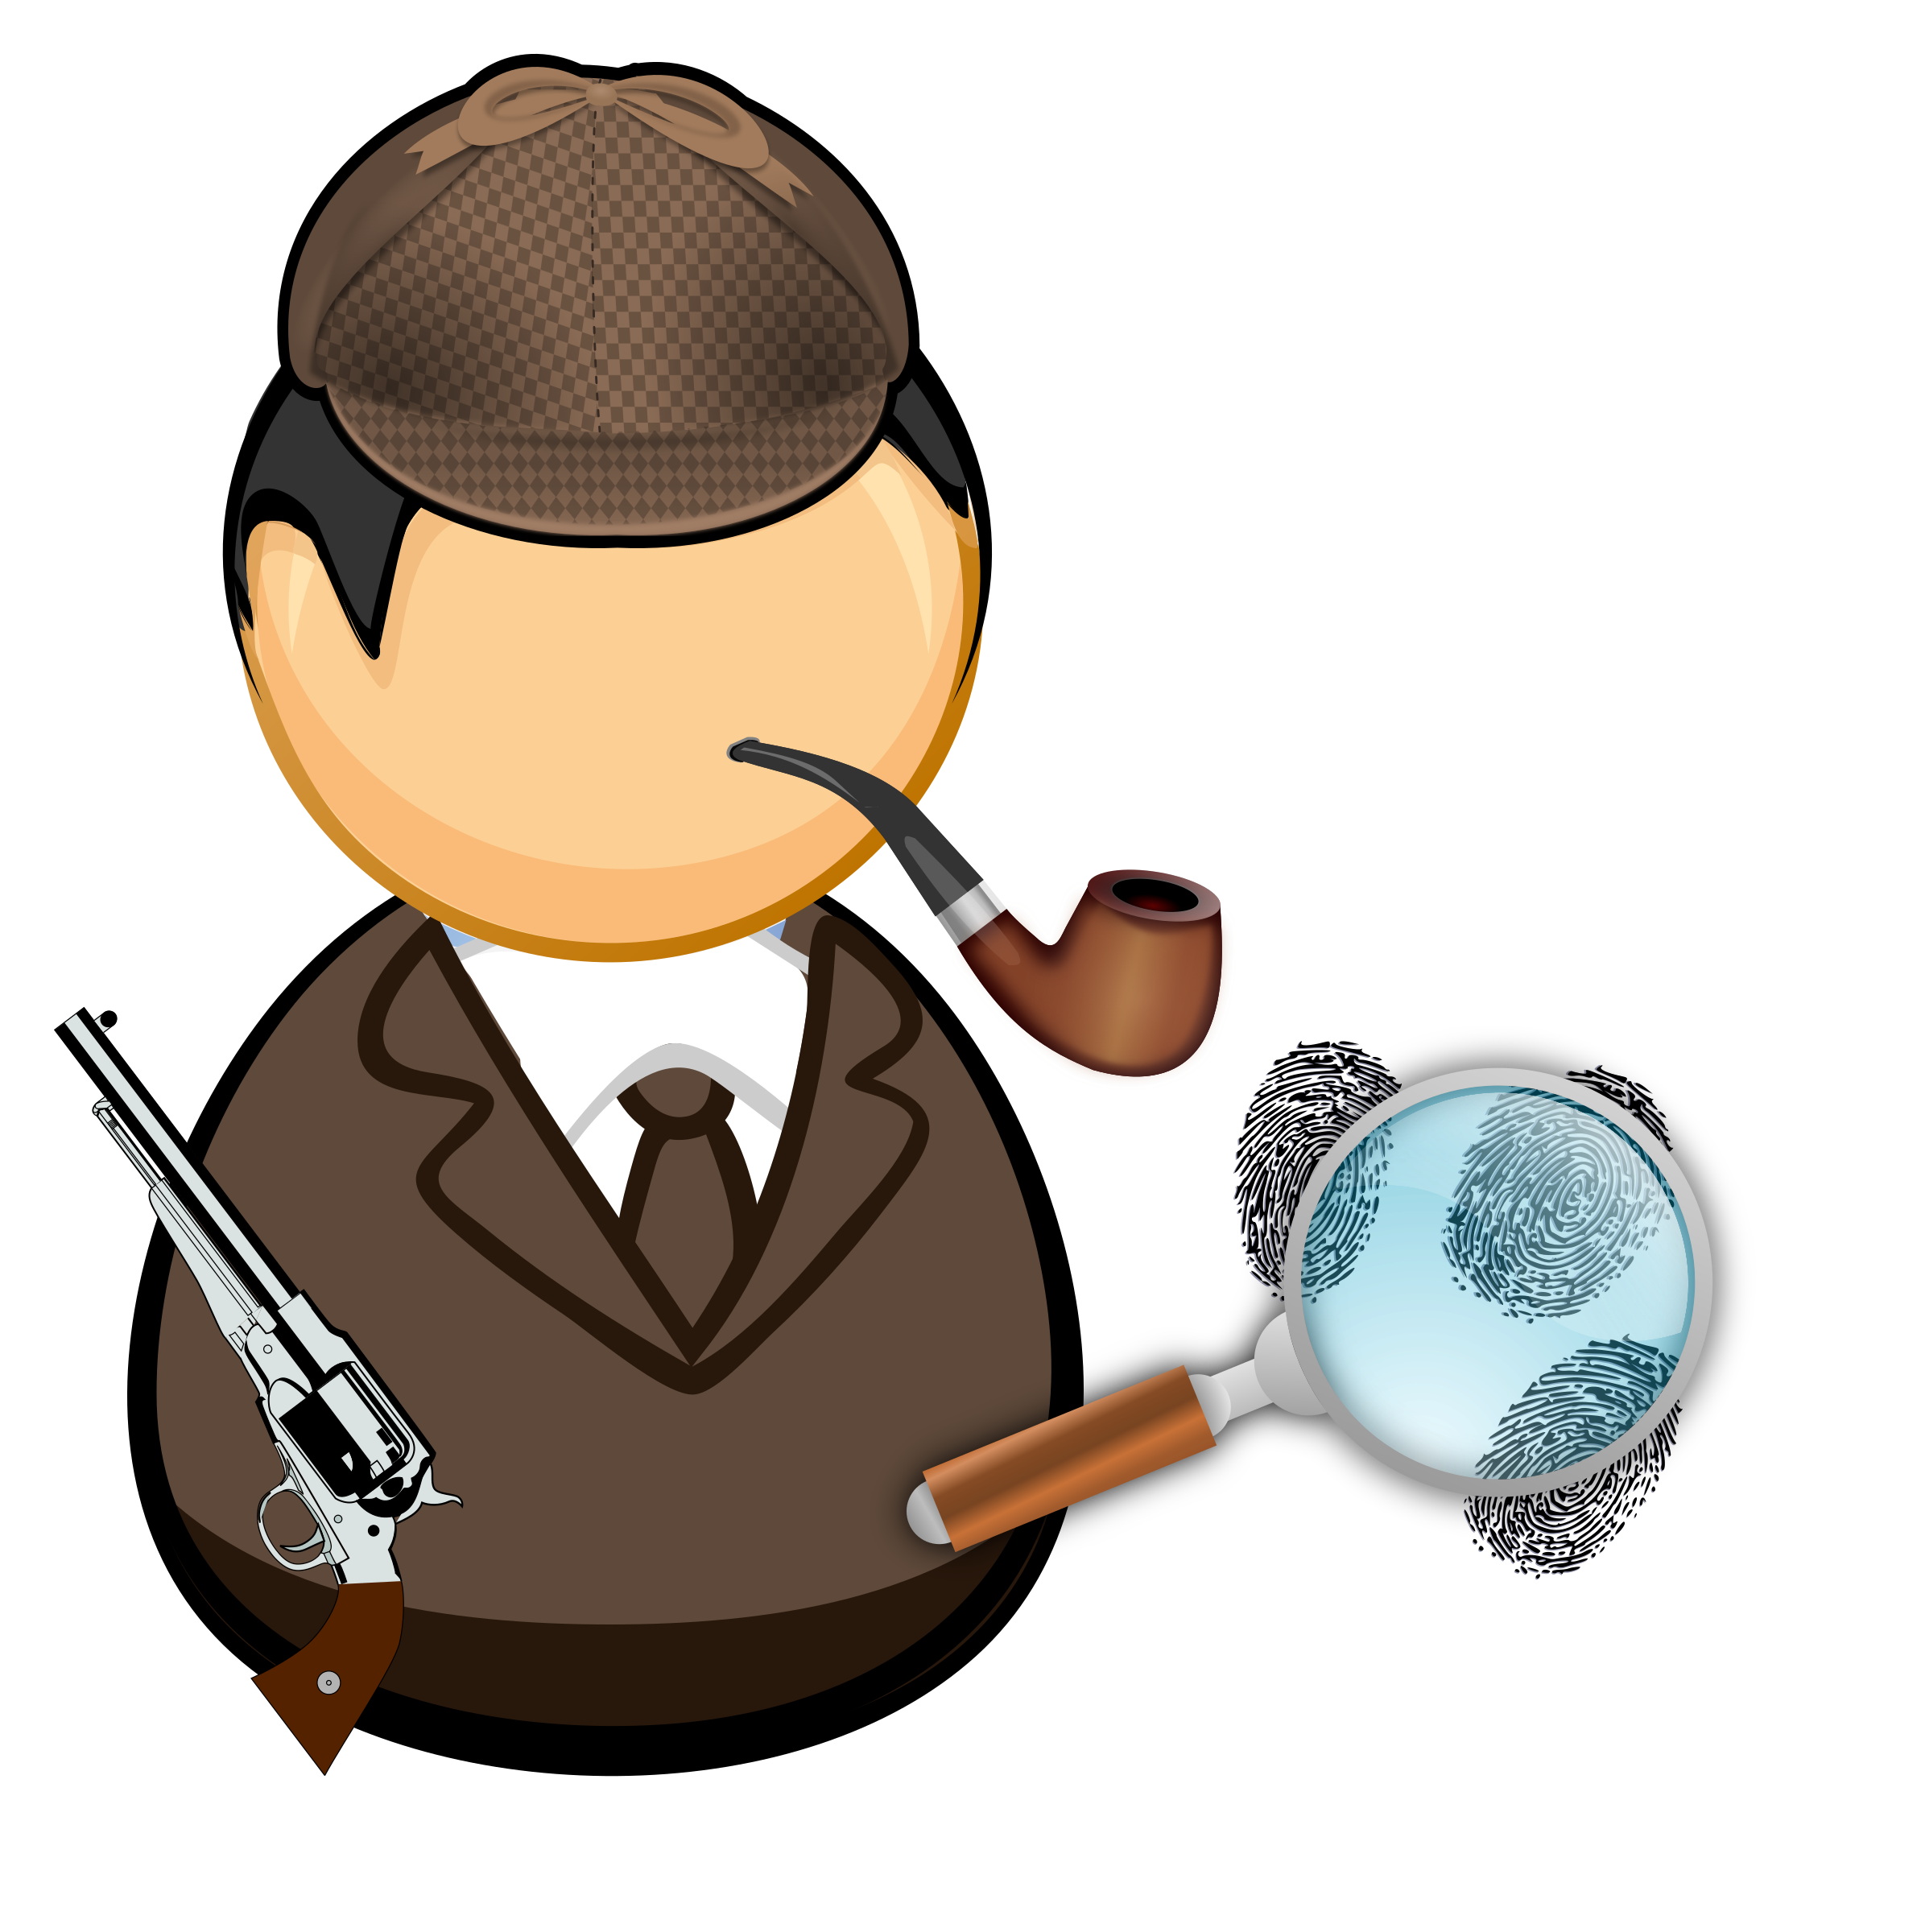 Detective with pipe and magnifying glass by Juhele